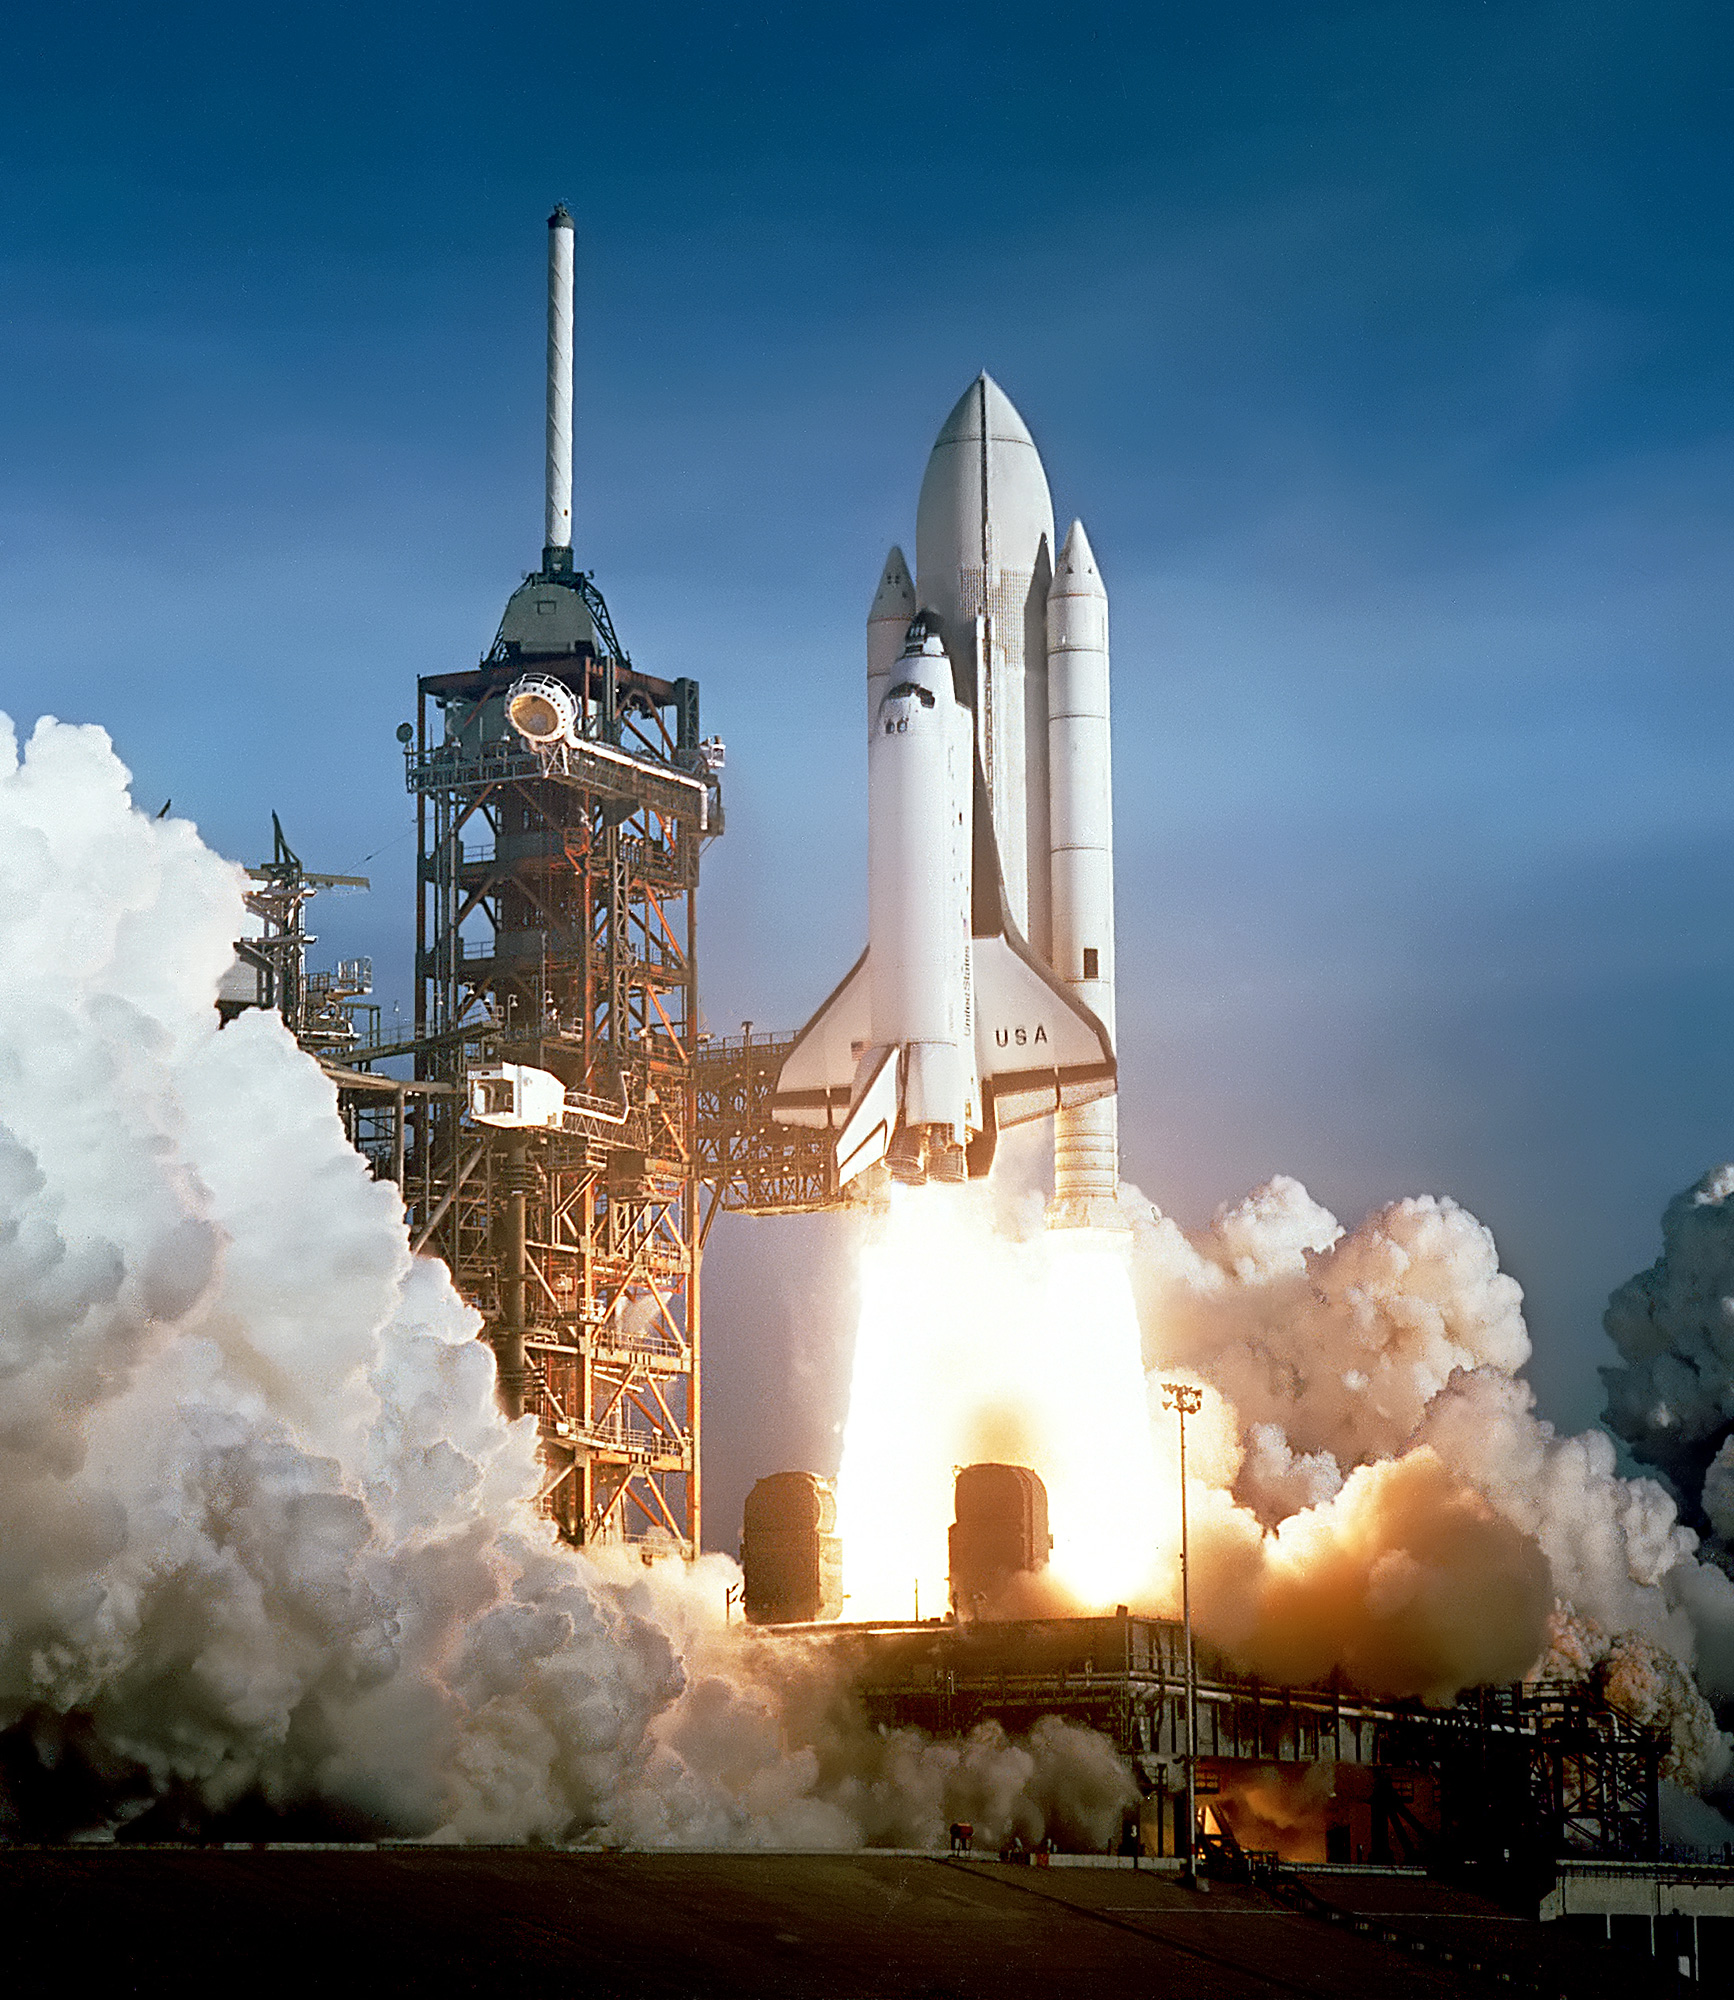 Space Shuttle Columbia disaster - Wikipedia